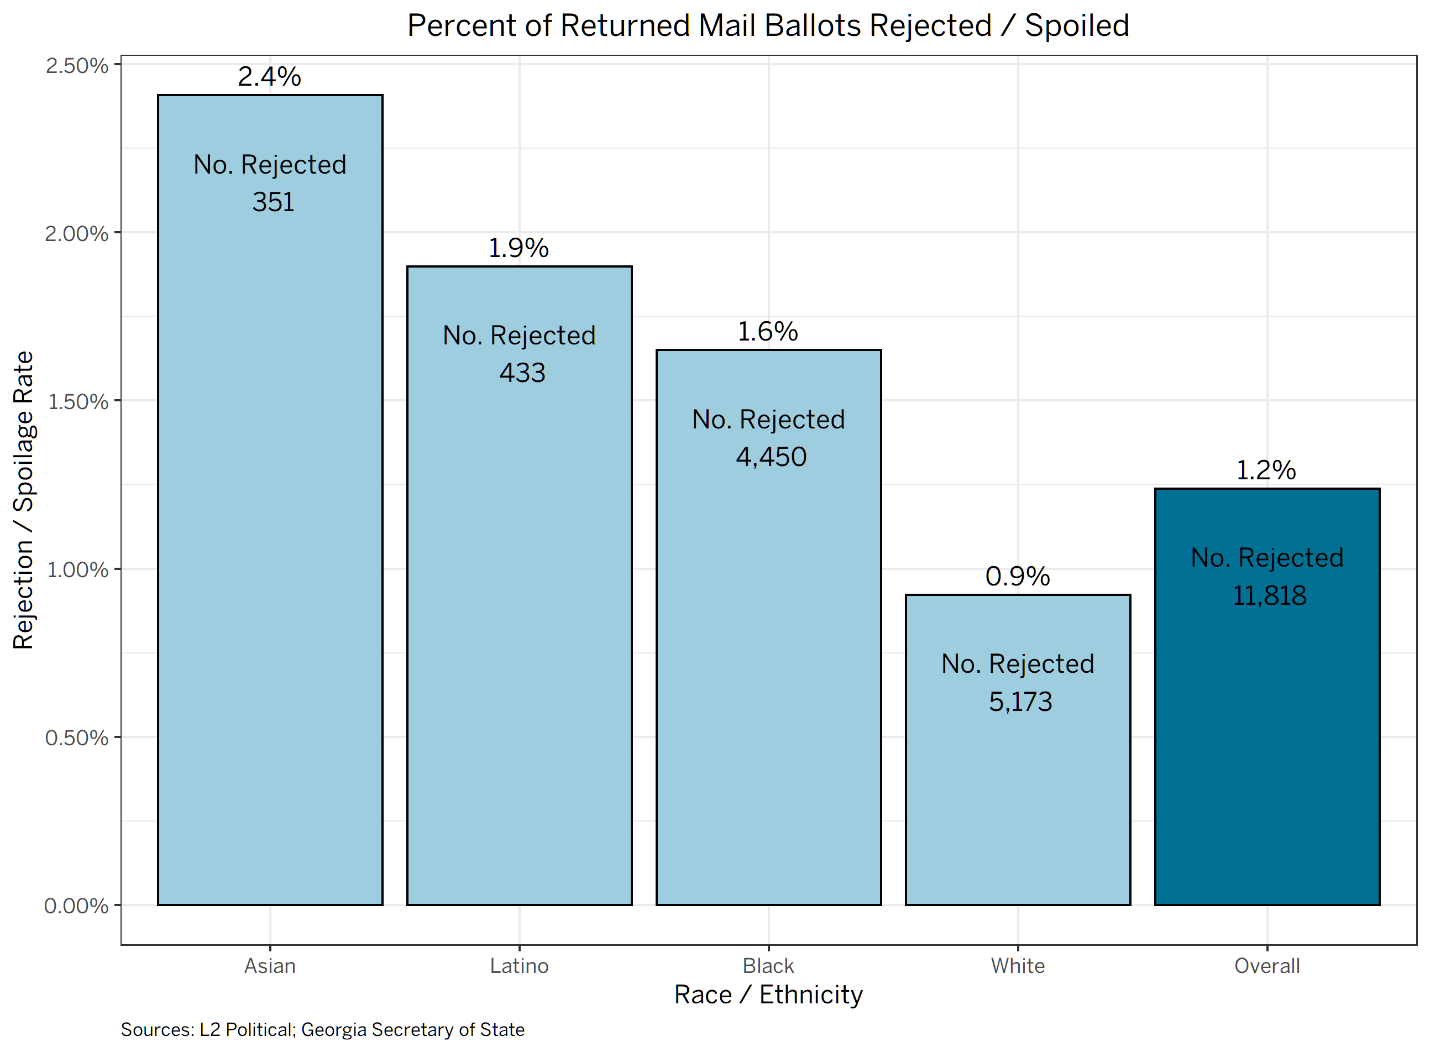 Percent of Returned Mail Ballots Rejected/Spoiled